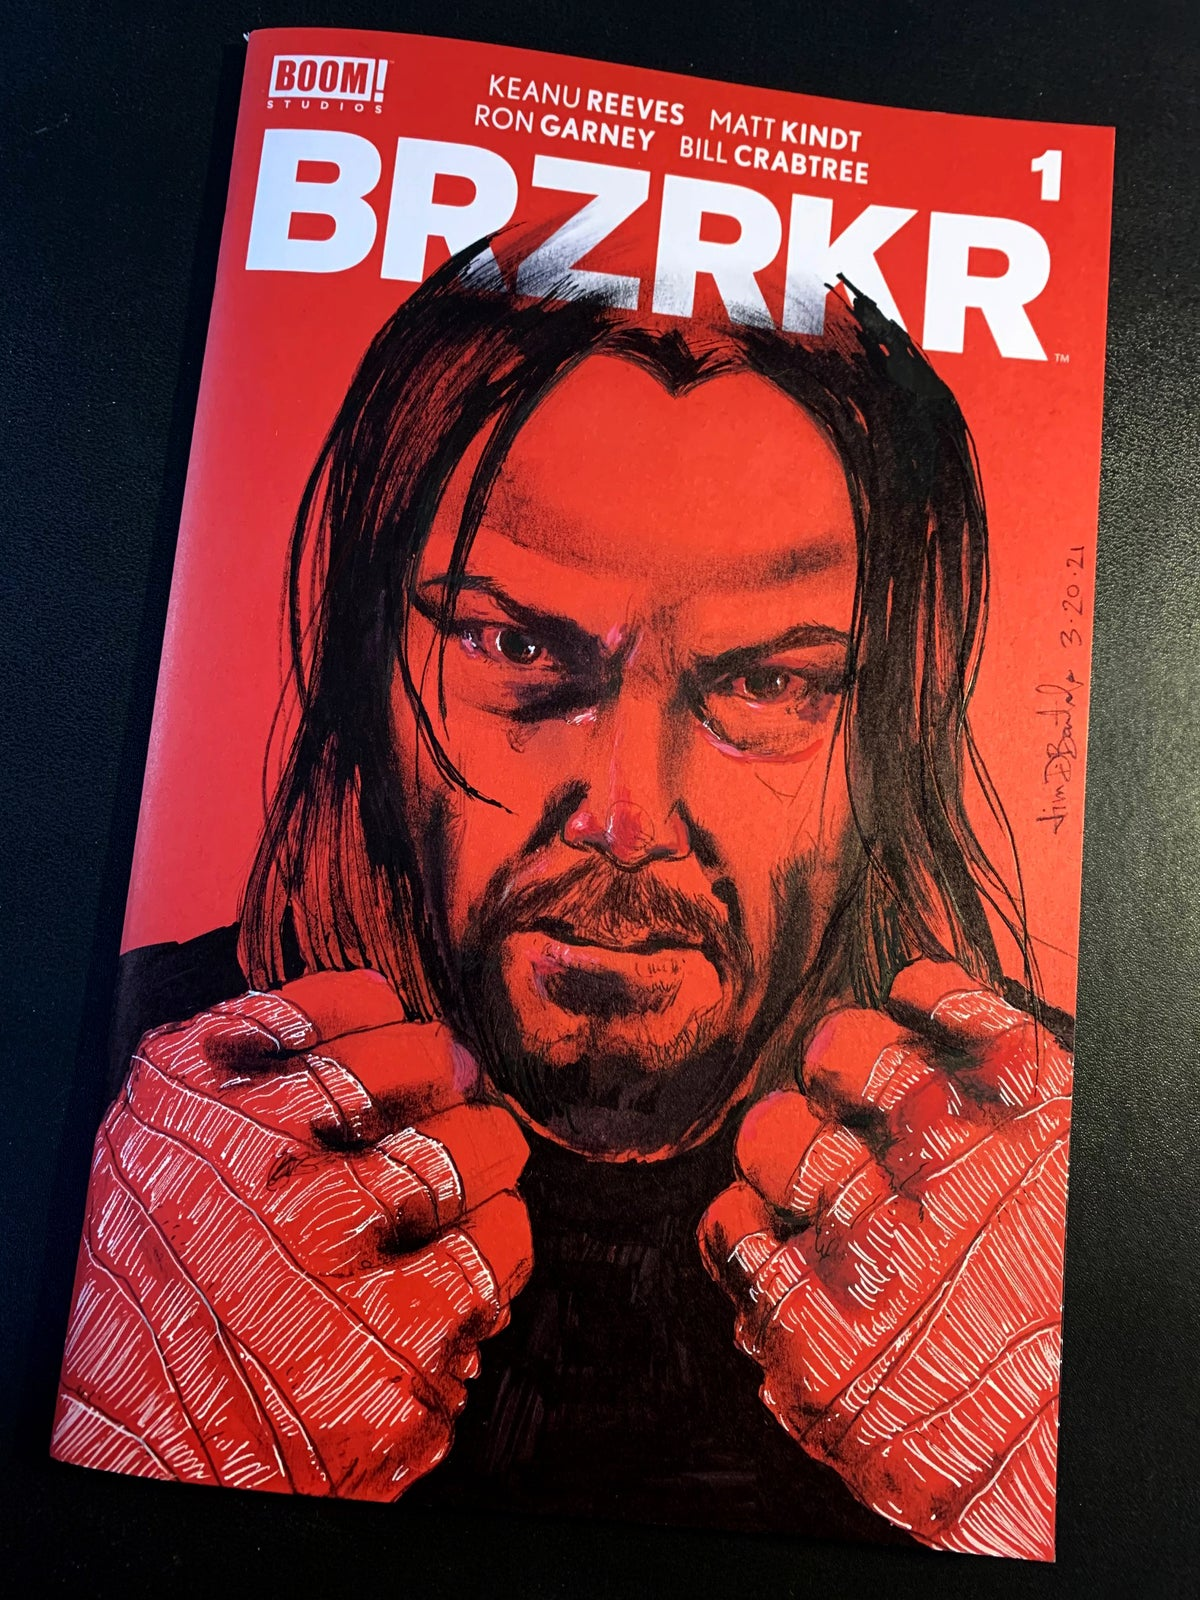 Keanu (fists) on BRZRKR comic book sketch cover (original art drawn directly on cover)